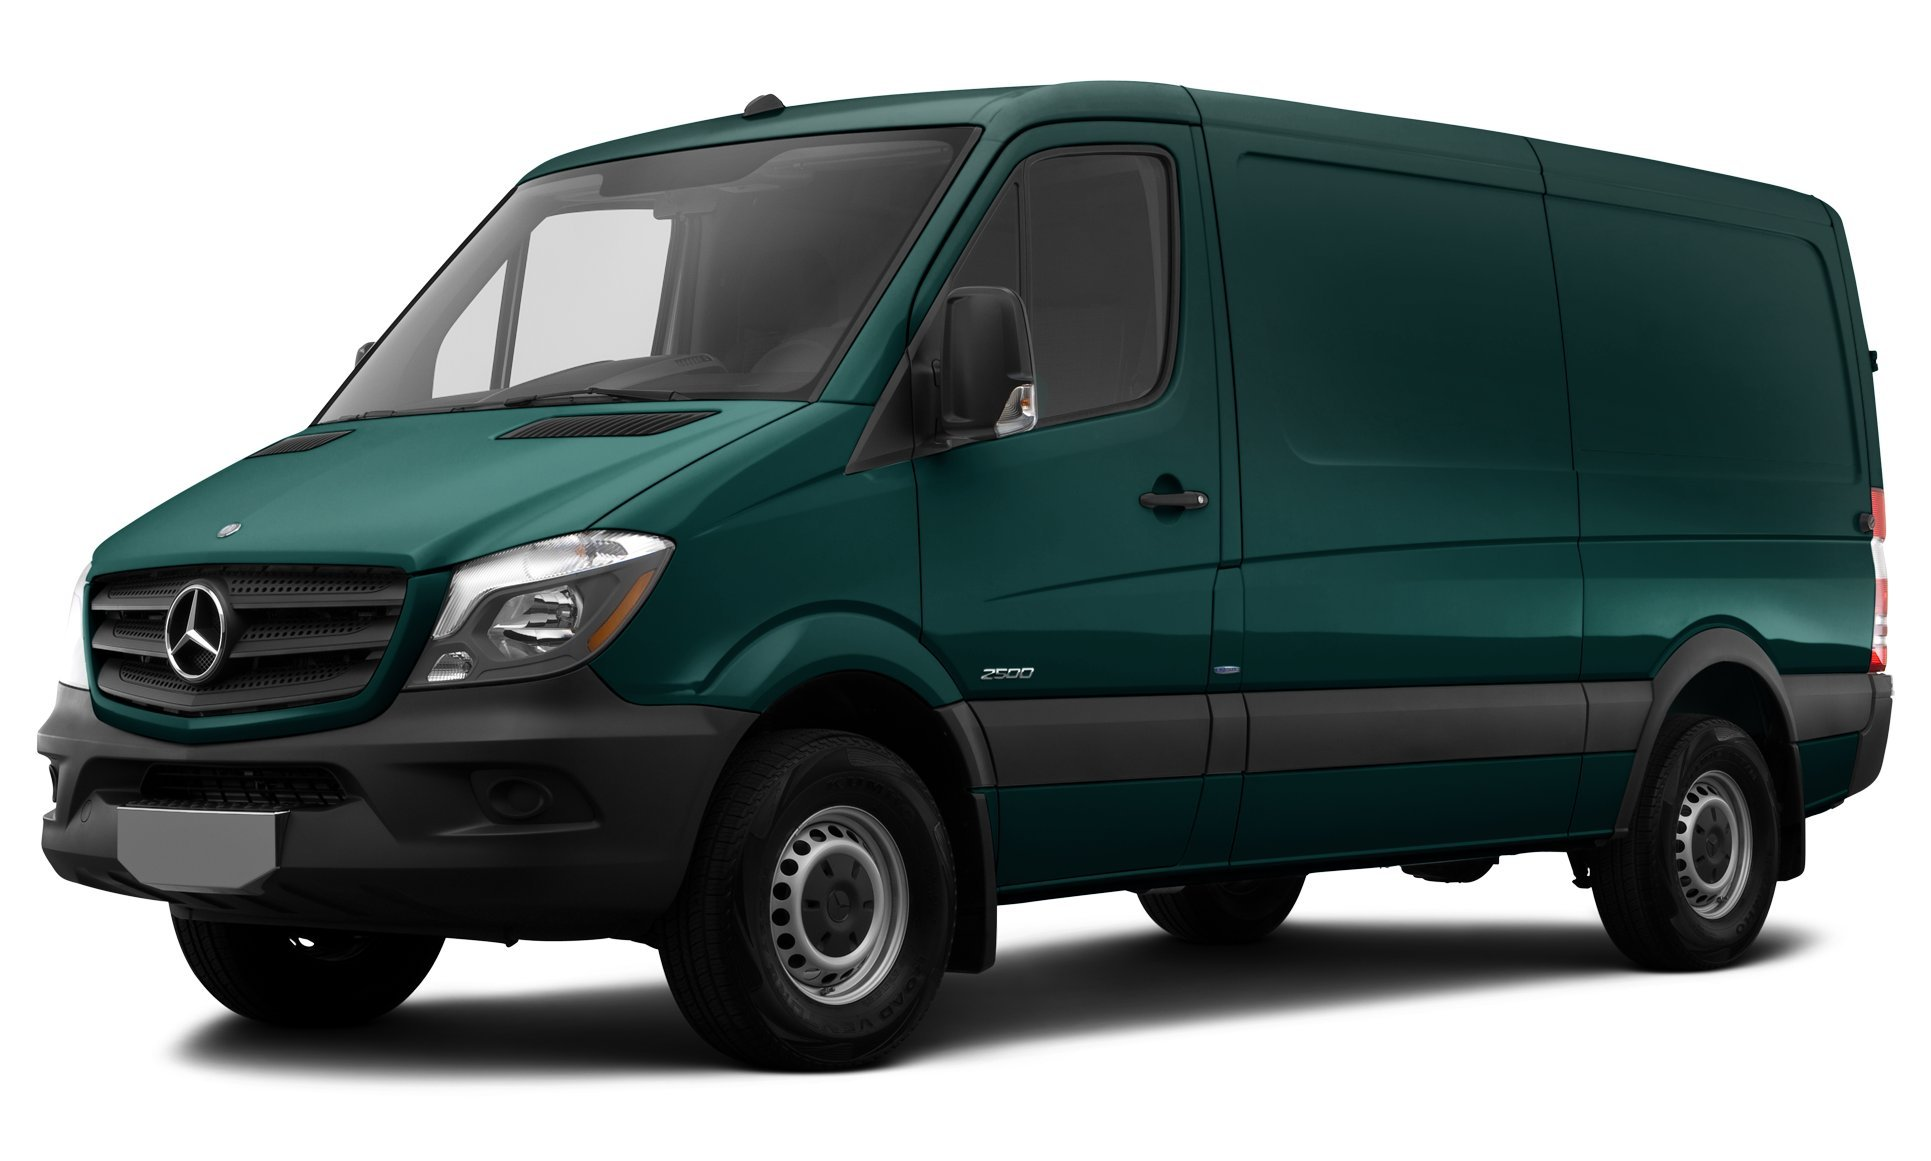 2014 mercedes benz sprinter 2500 reviews images and specs vehicles. Black Bedroom Furniture Sets. Home Design Ideas